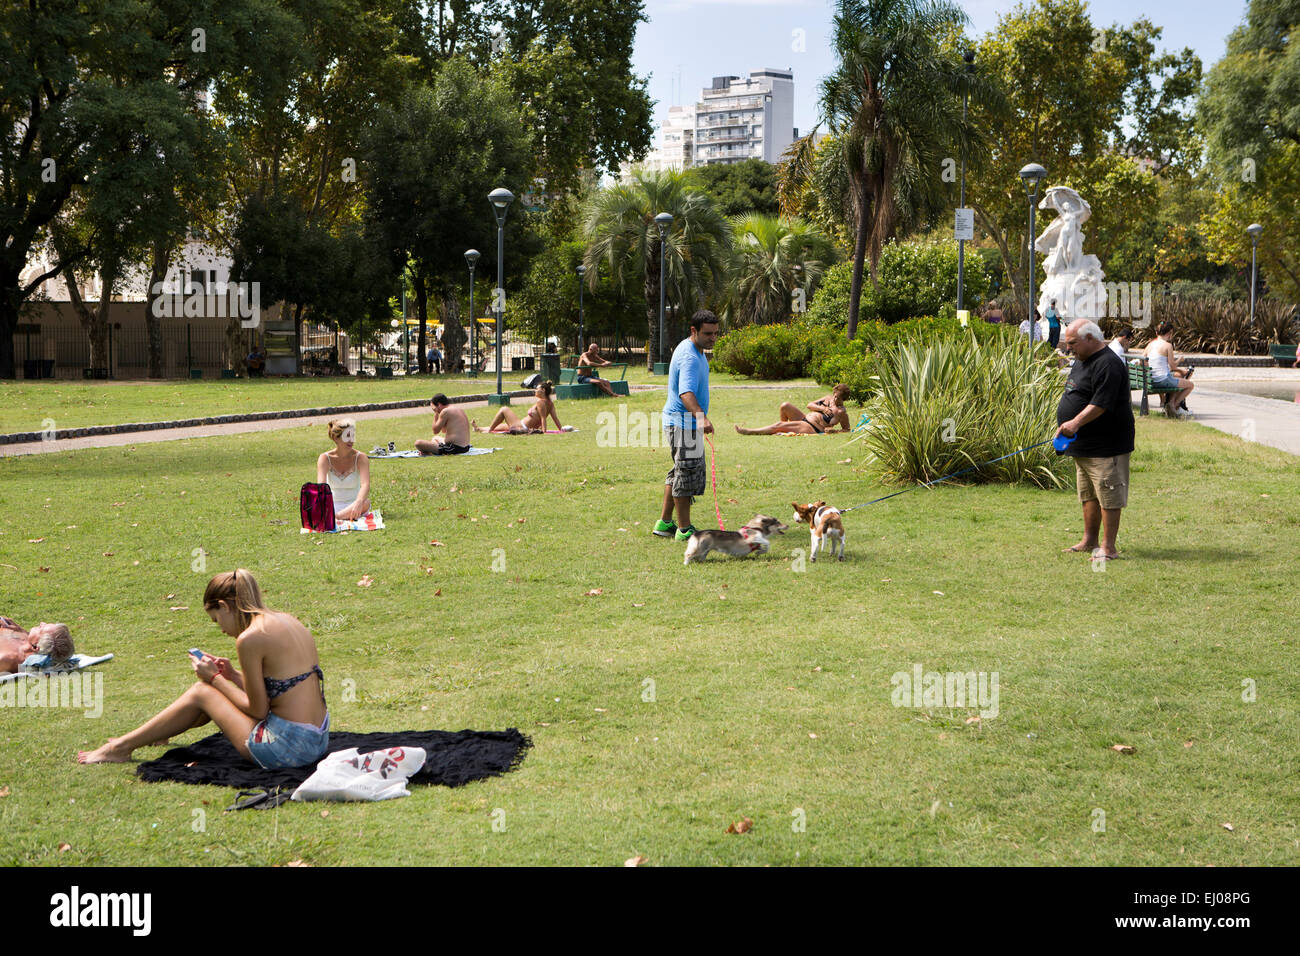 Argentina, Buenos Aires, Almagro, Parque Centenario, Centenary Park, people sunbathing on grass - Stock Image